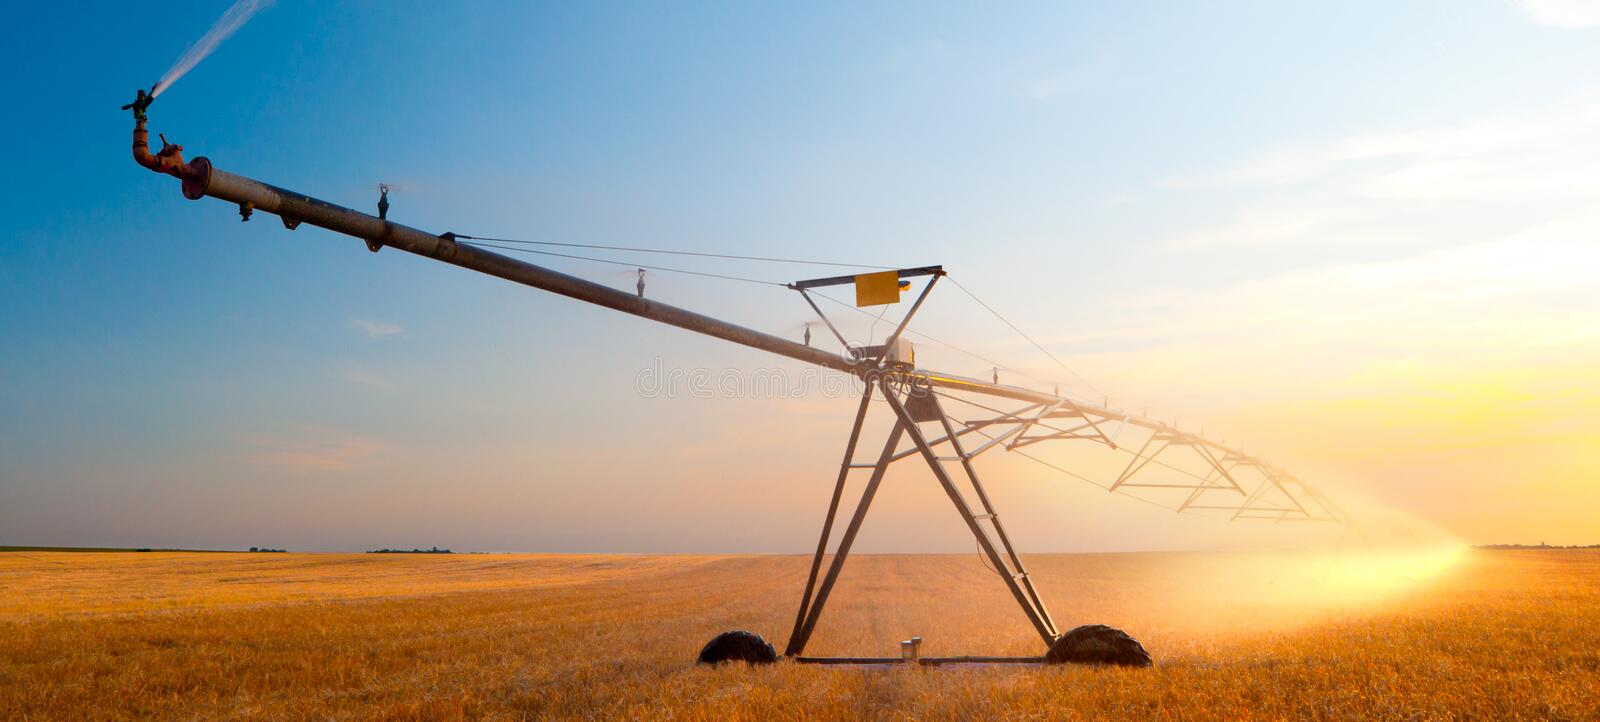 Irrigation system on agricultural wheat field at summer sunse royalty free stock photos